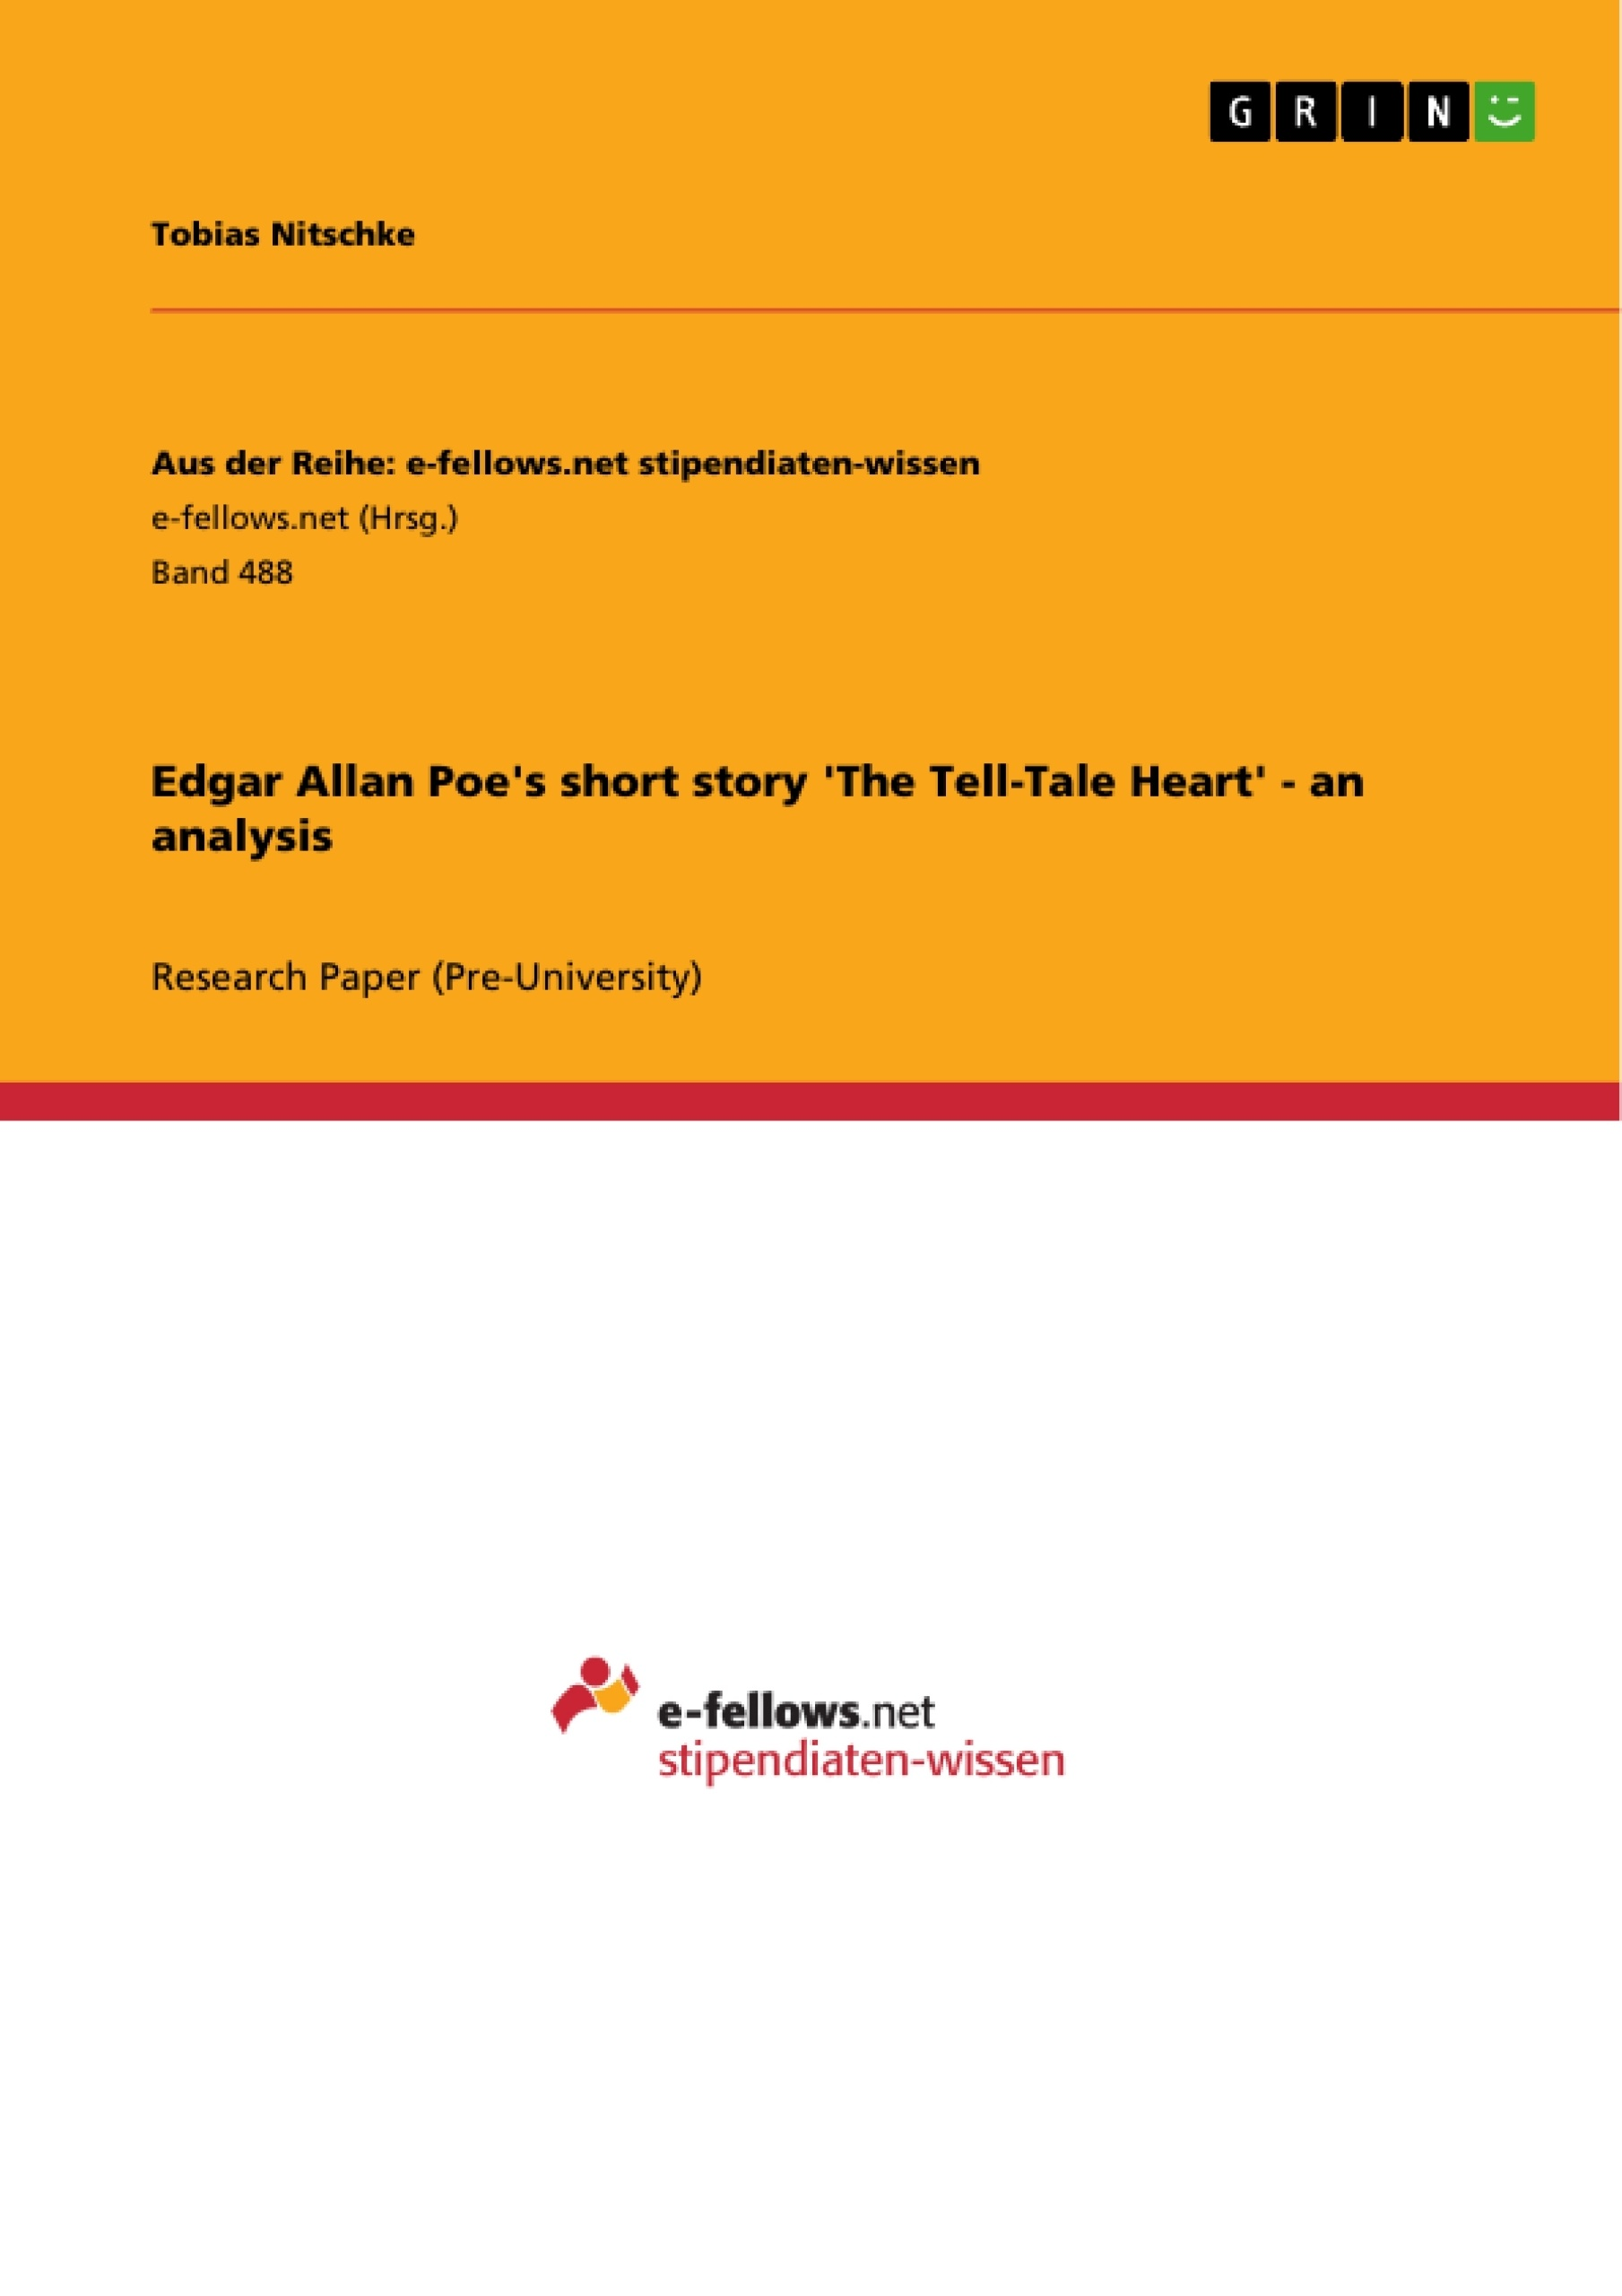 edgar allan poe s short story the tell tale heart an analysis edgar allan poe s short story the tell tale heart an analysis publish your master s thesis bachelor s thesis essay or term paper